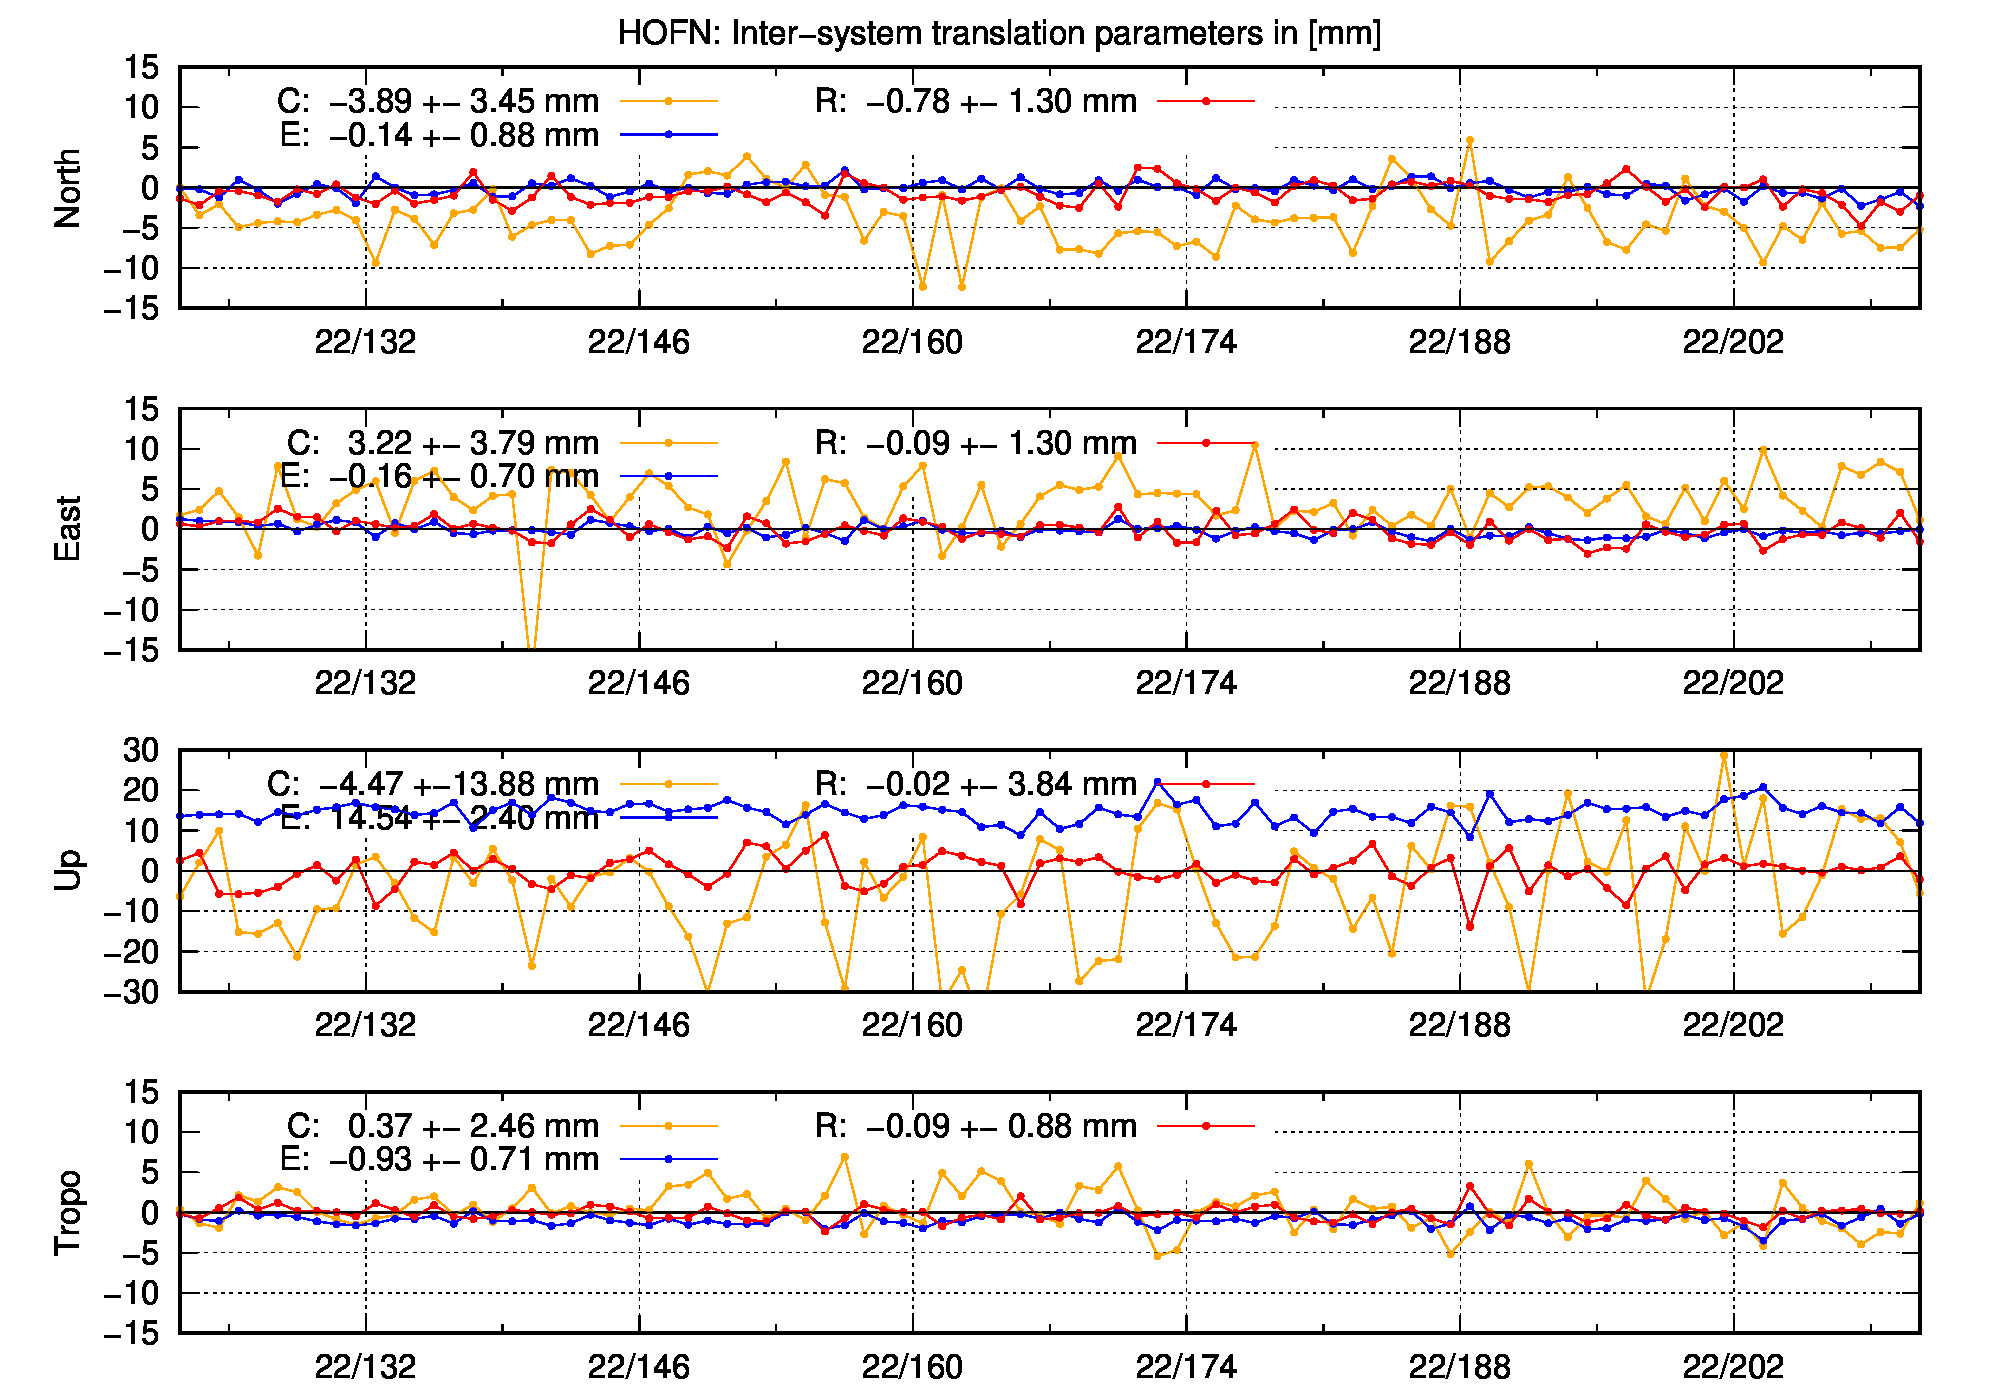 TRA time series of HOFN last 2 months